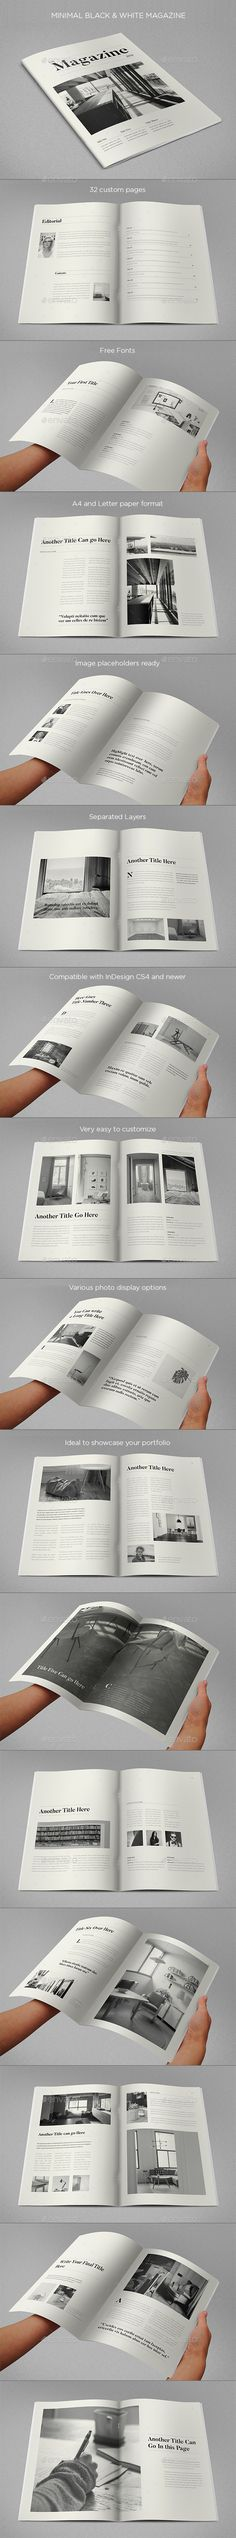 Minimal Black & White Magazine Template InDesign INDD. Download here: https://graphicriver.net/item/minimal-black-white-magazine/17358159?ref=ksioks